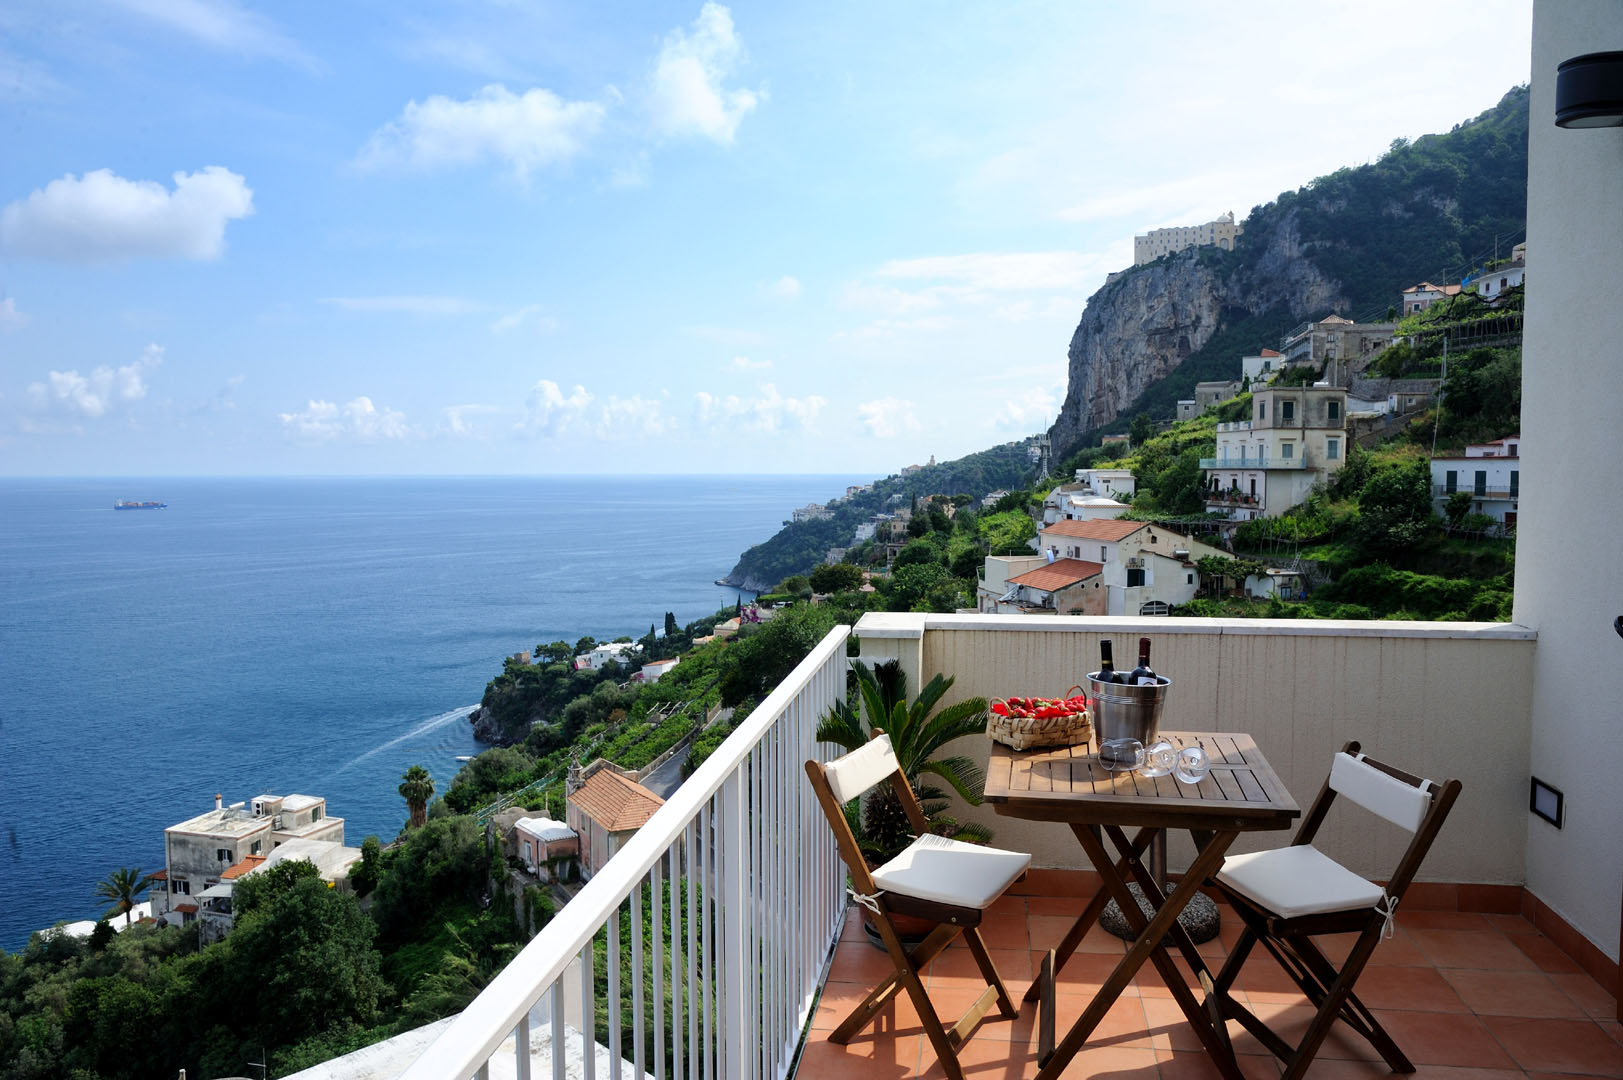 Apartments amalfi vettica apartments costiera for Apartments amalfi